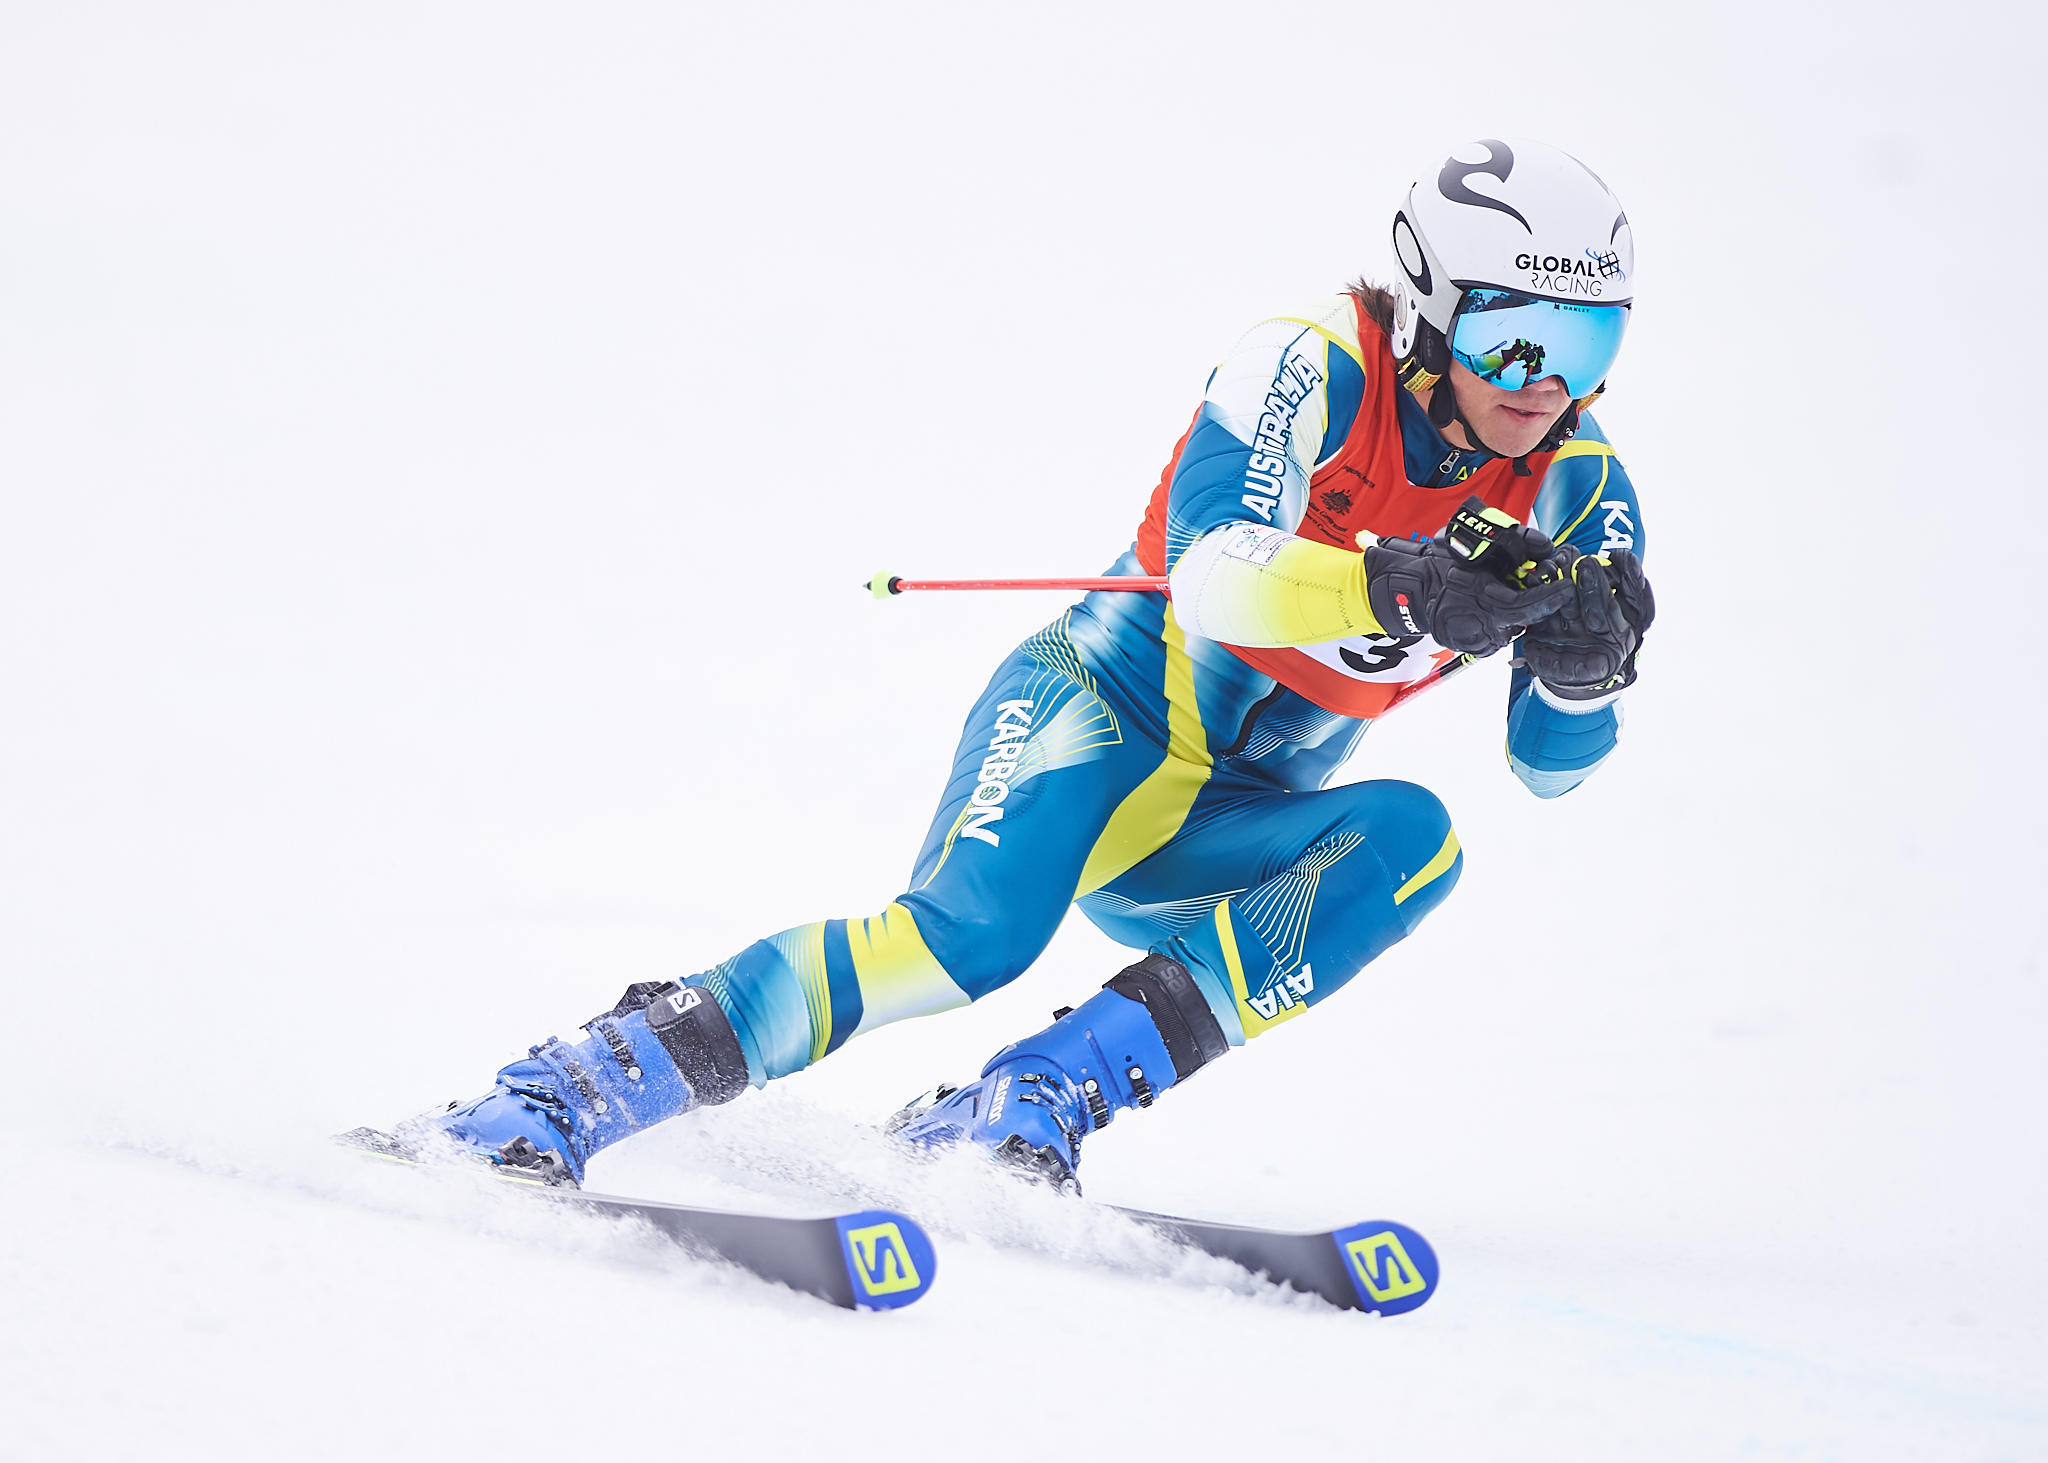 VU Student, Harry Laidlaw representing Victoria University in Giant Slalom at 2018 Nationals Snow, Mt Buller.